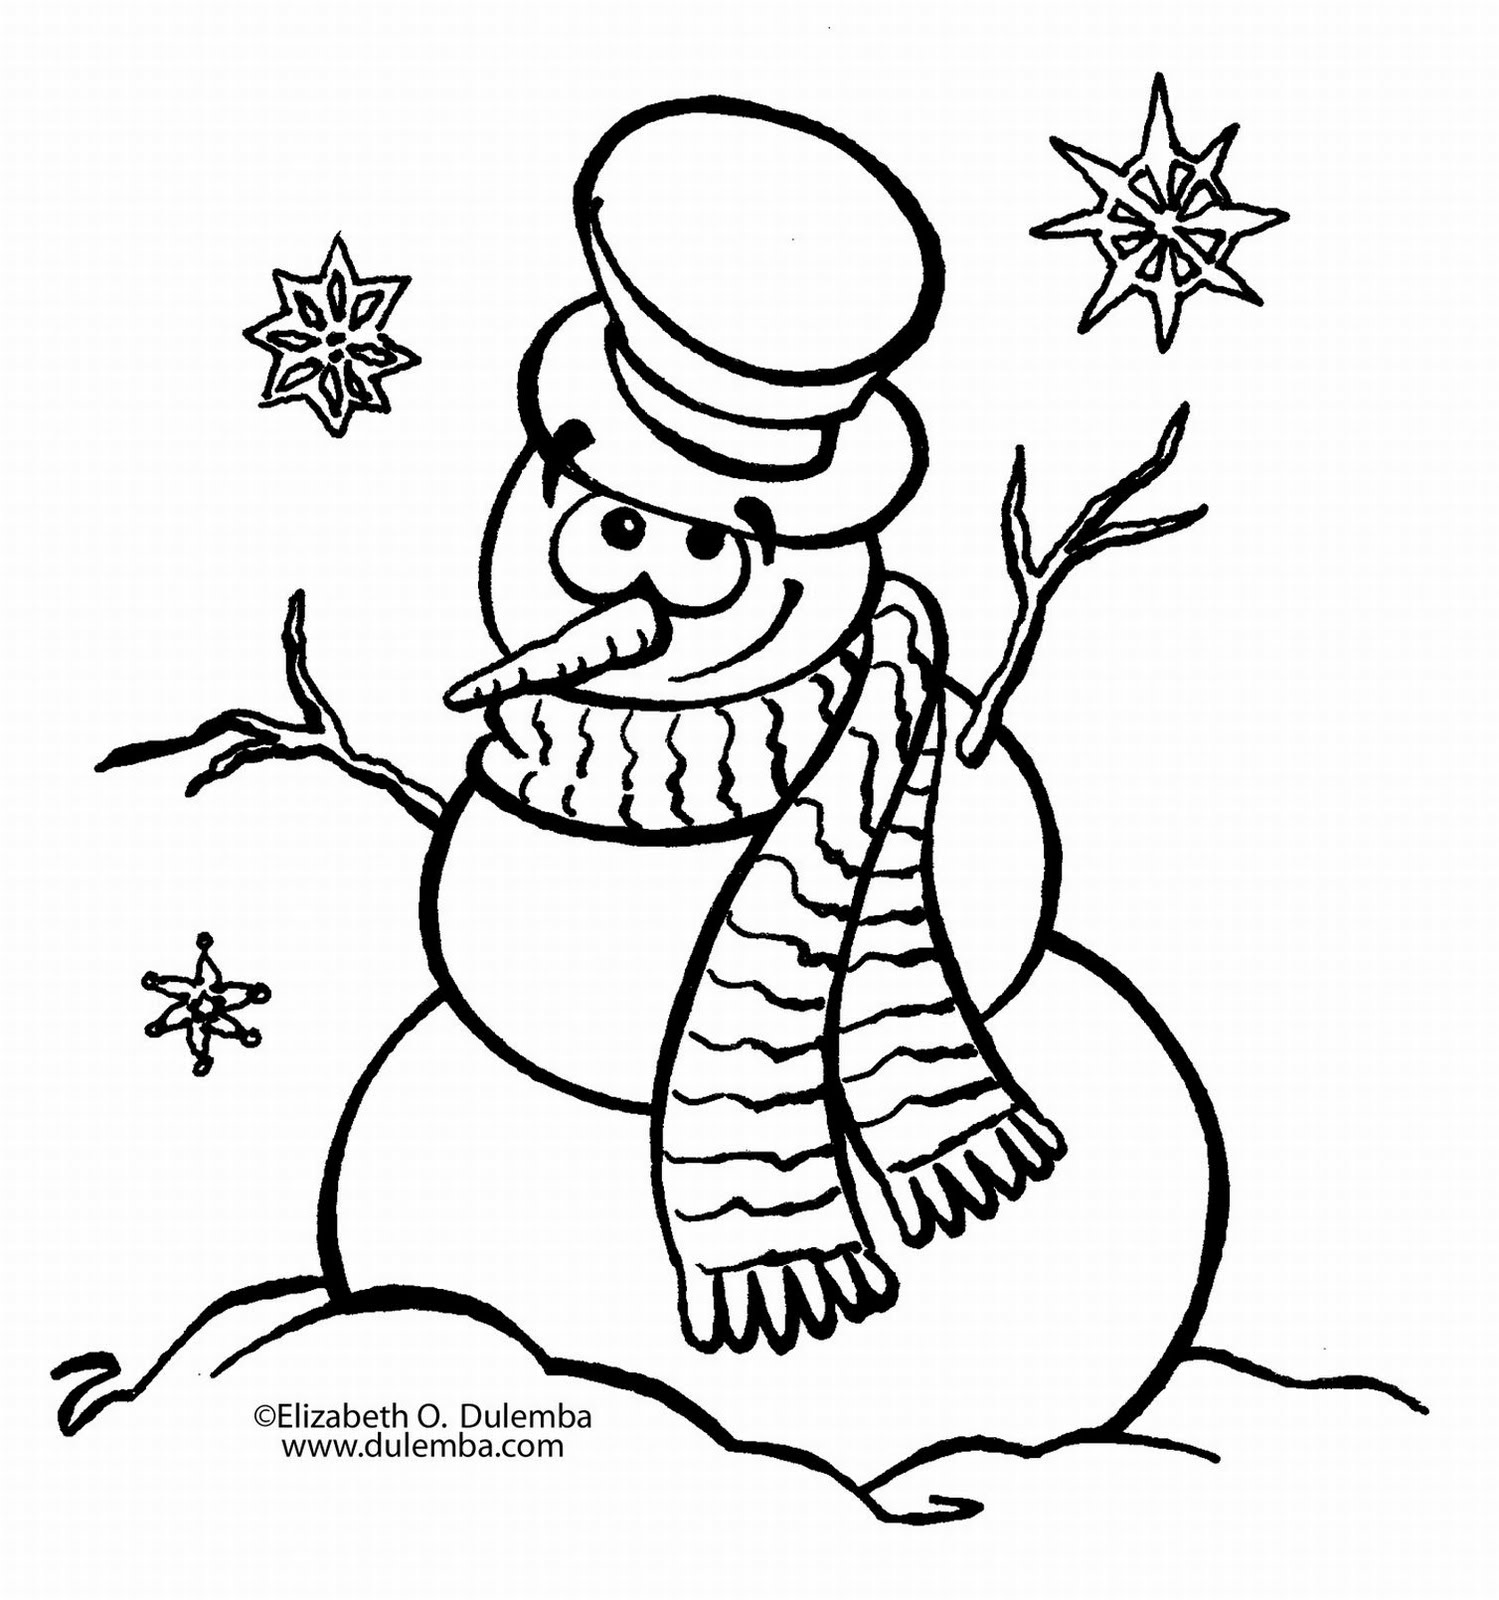 Blank Snowman Coloring Pages Gt Gt Disney Coloring Pages Blank Colouring Pages